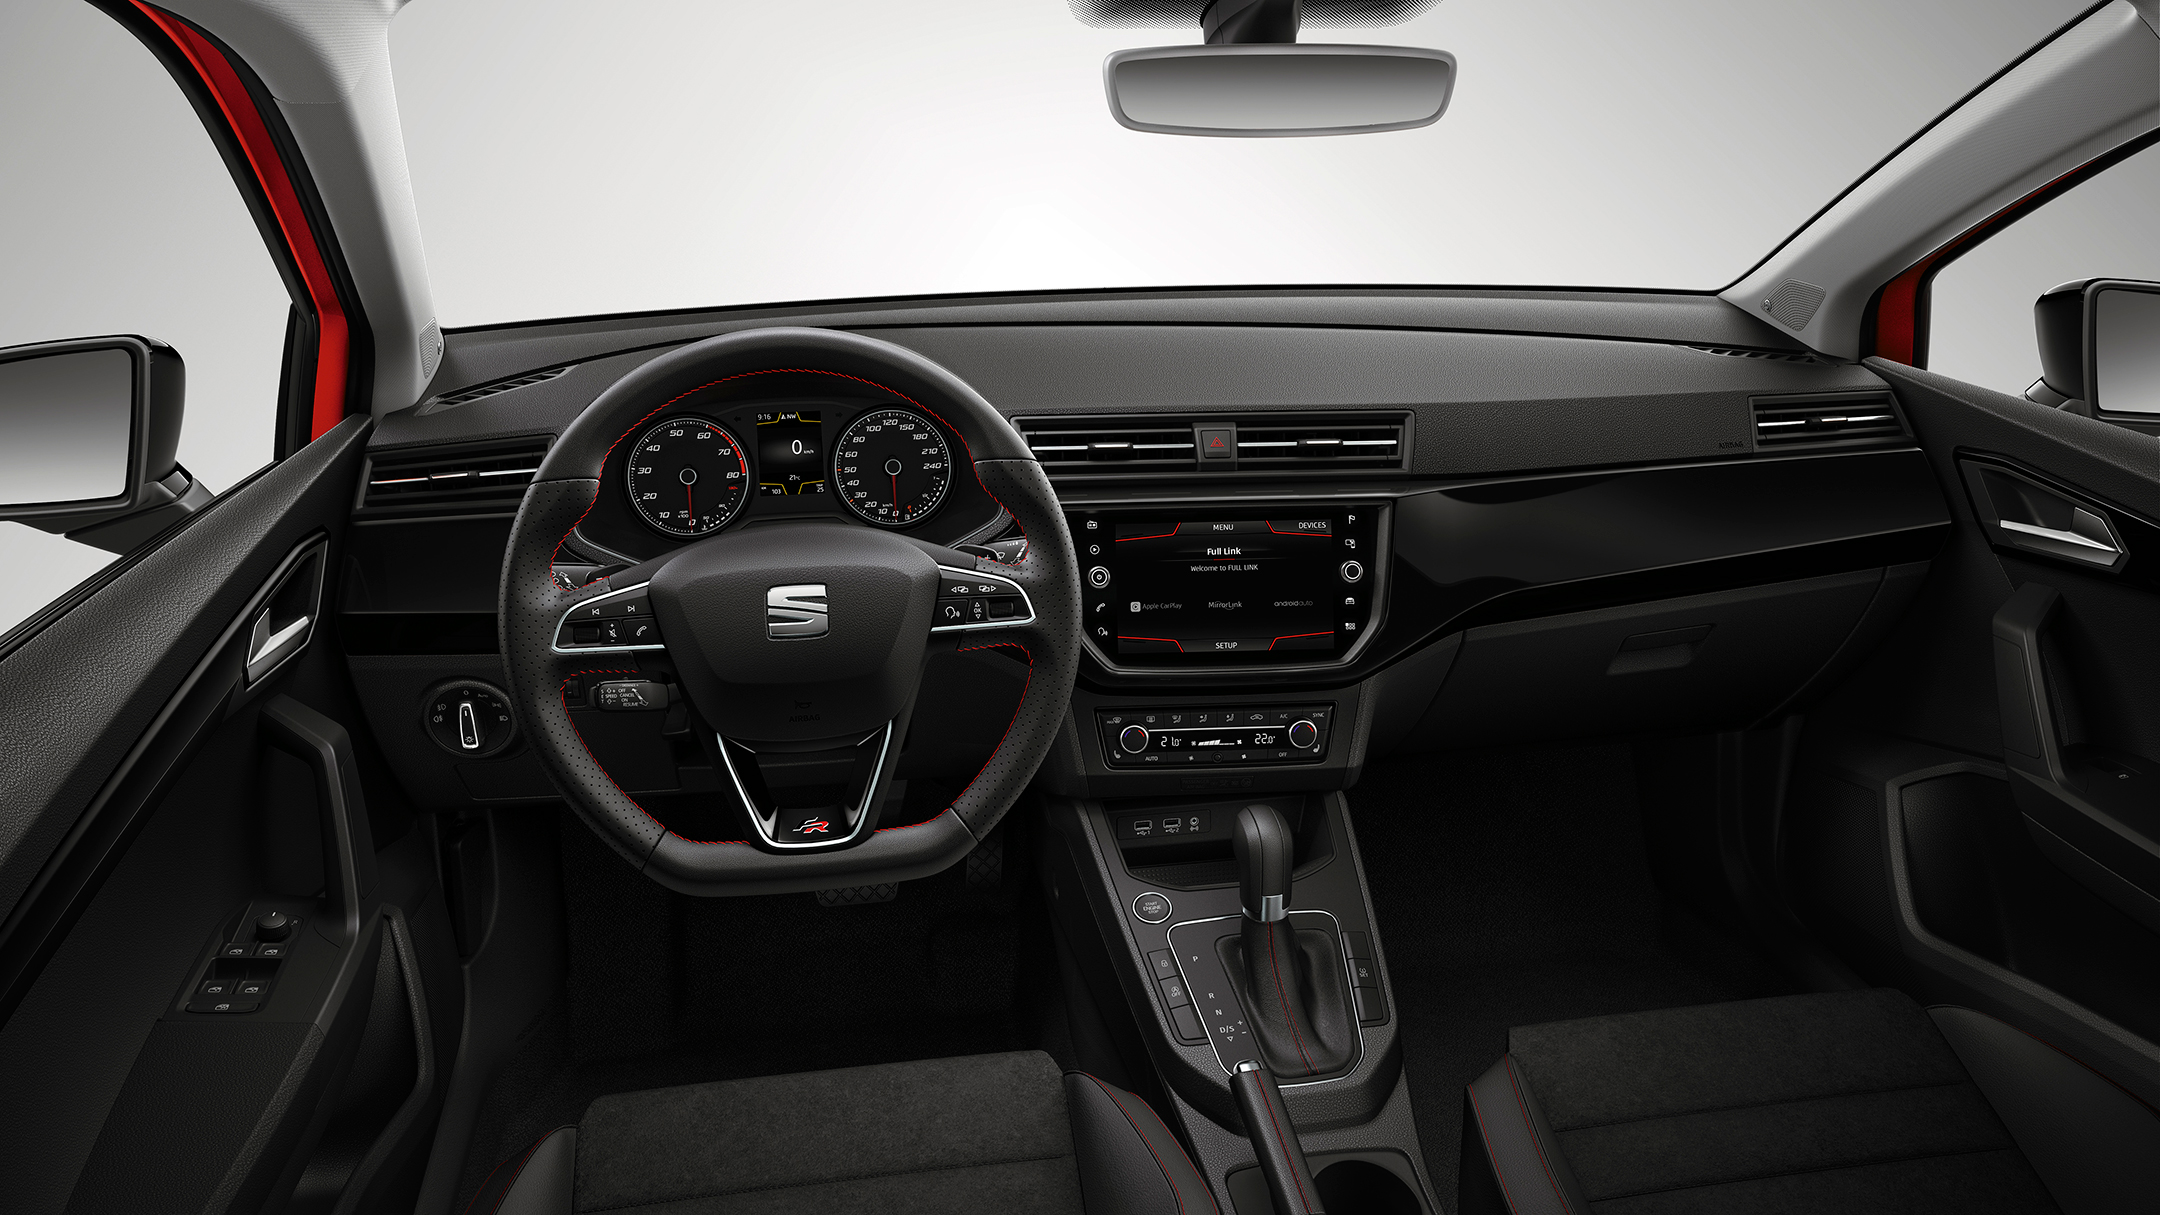 Emejing Interieur Seat Ibiza Fr Pictures - Trend Ideas 2018 ...